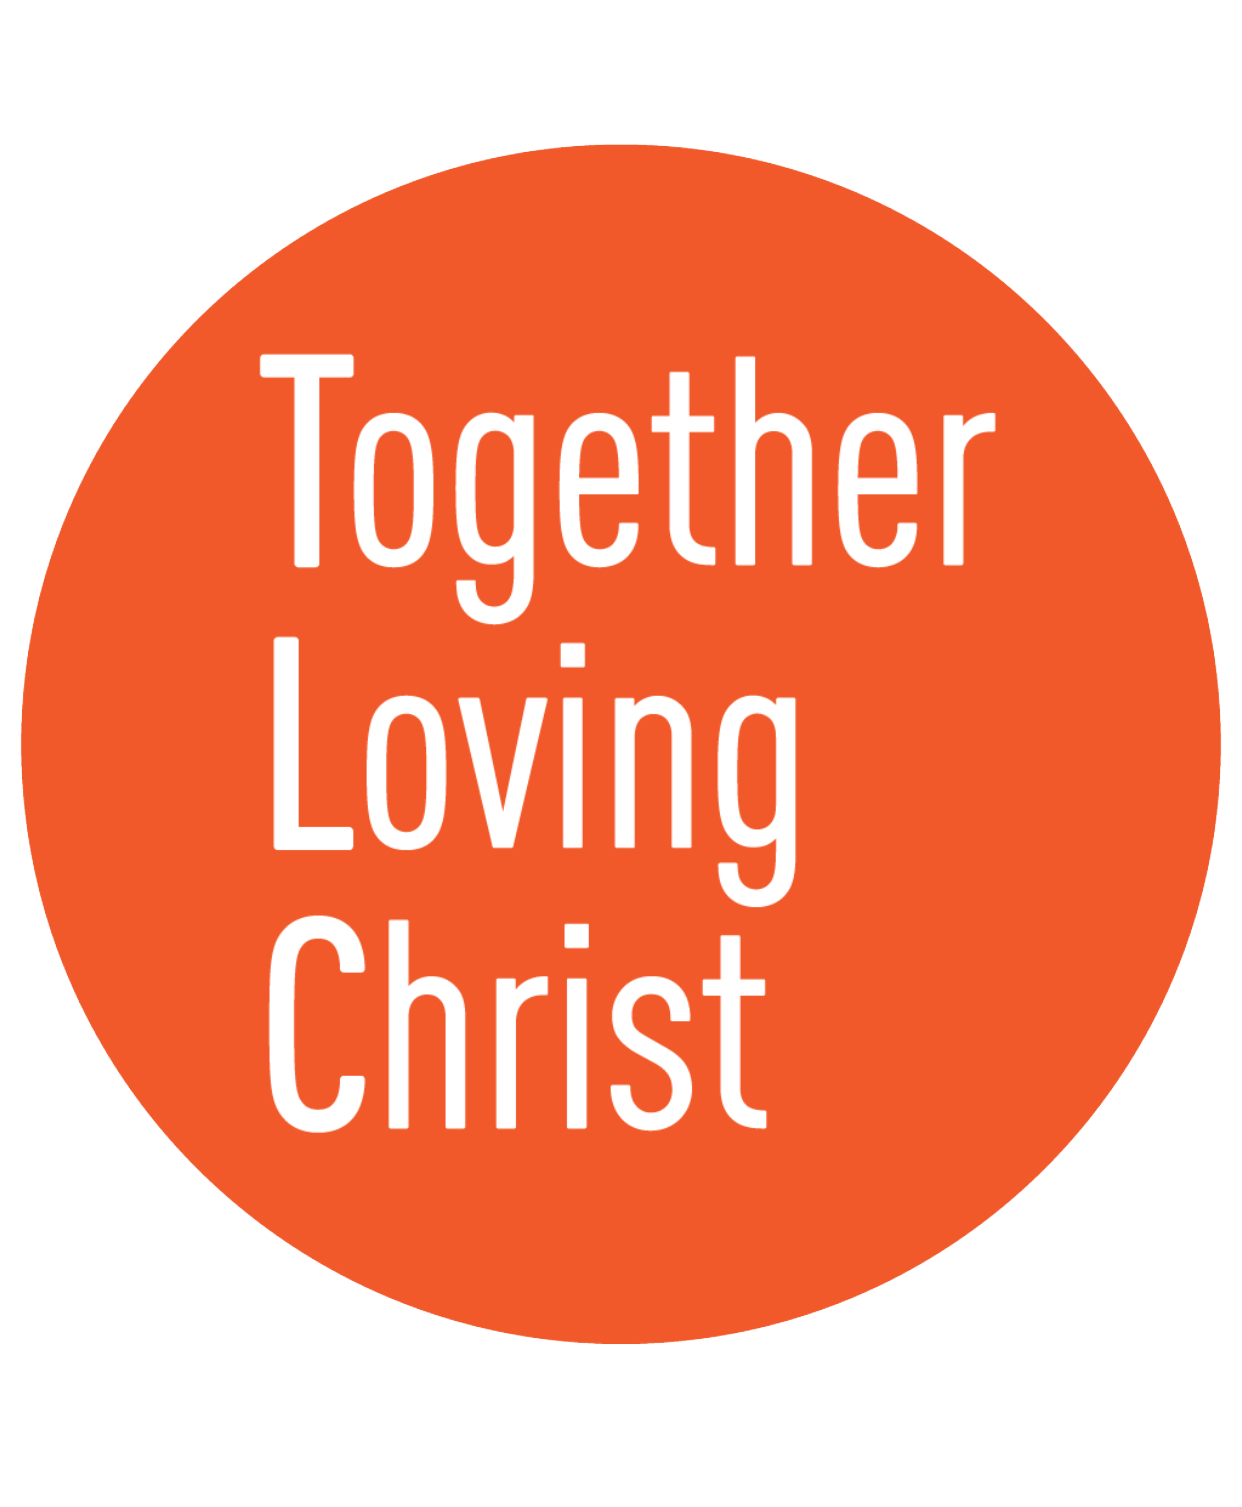 Together Loving Christ